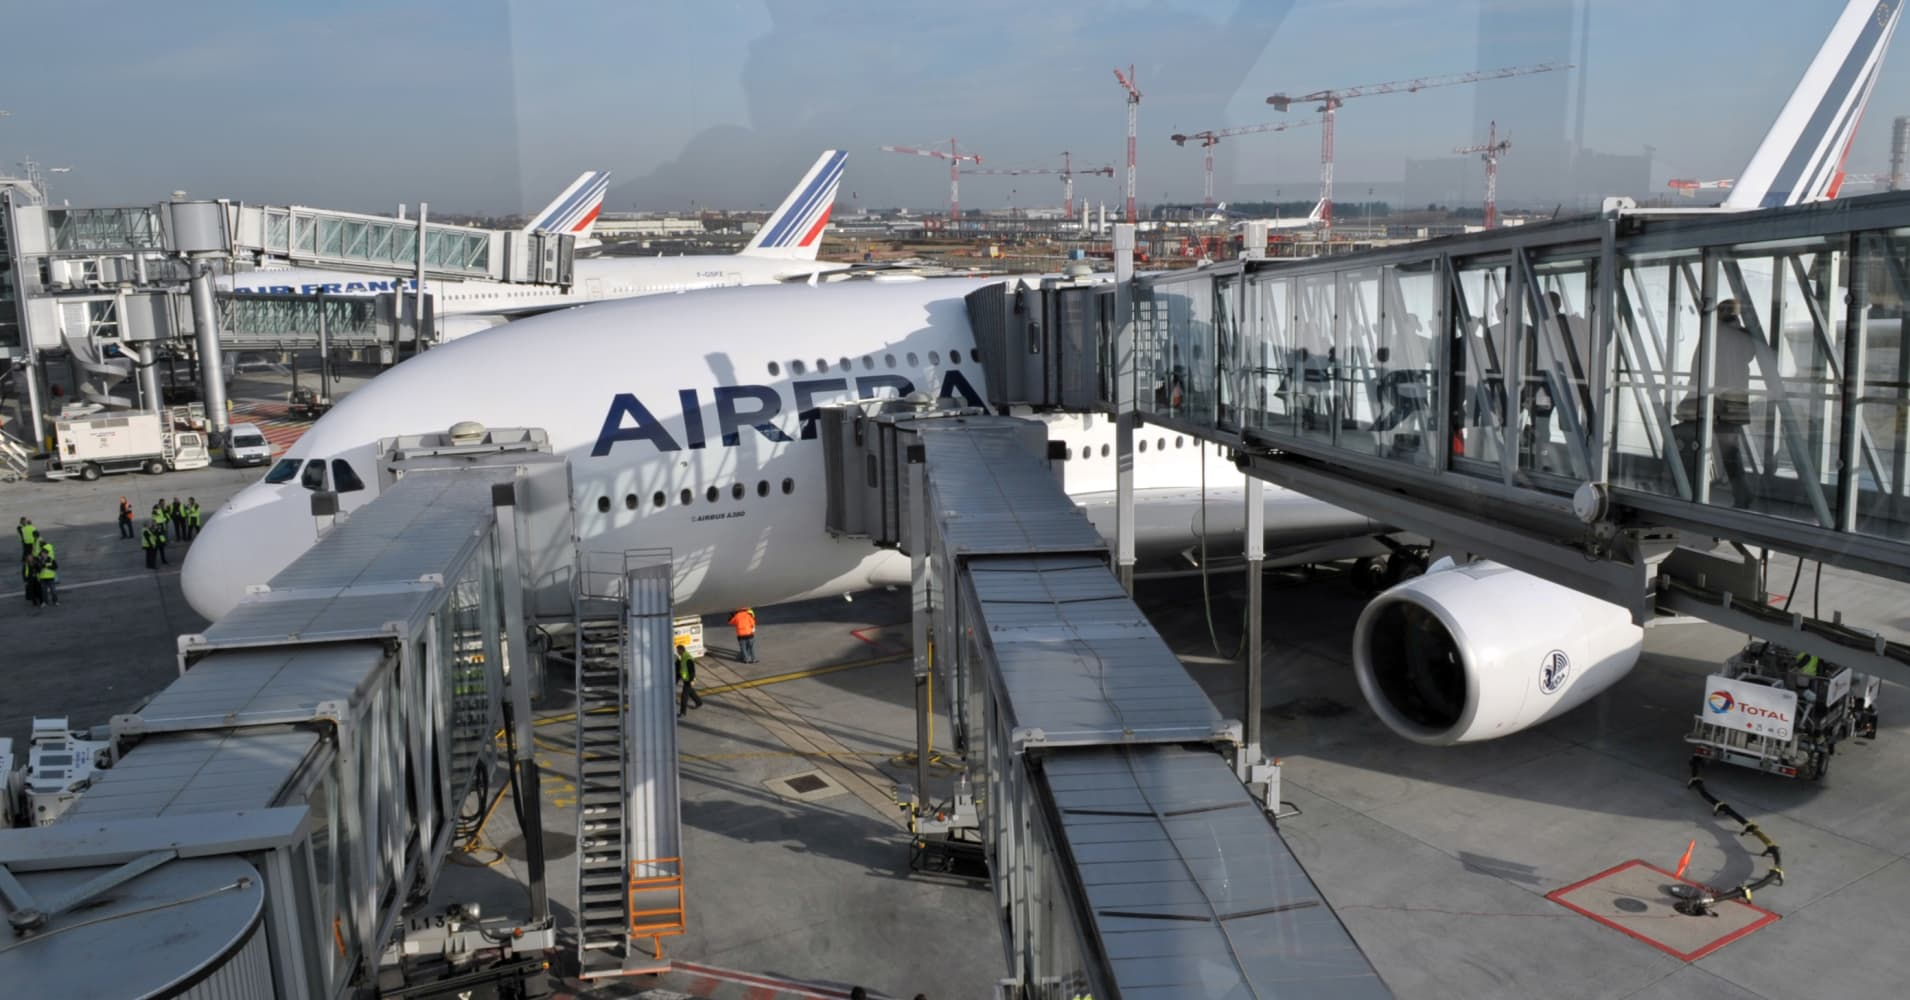 Resultado de imagen para Air France cancels fourth part strike flights